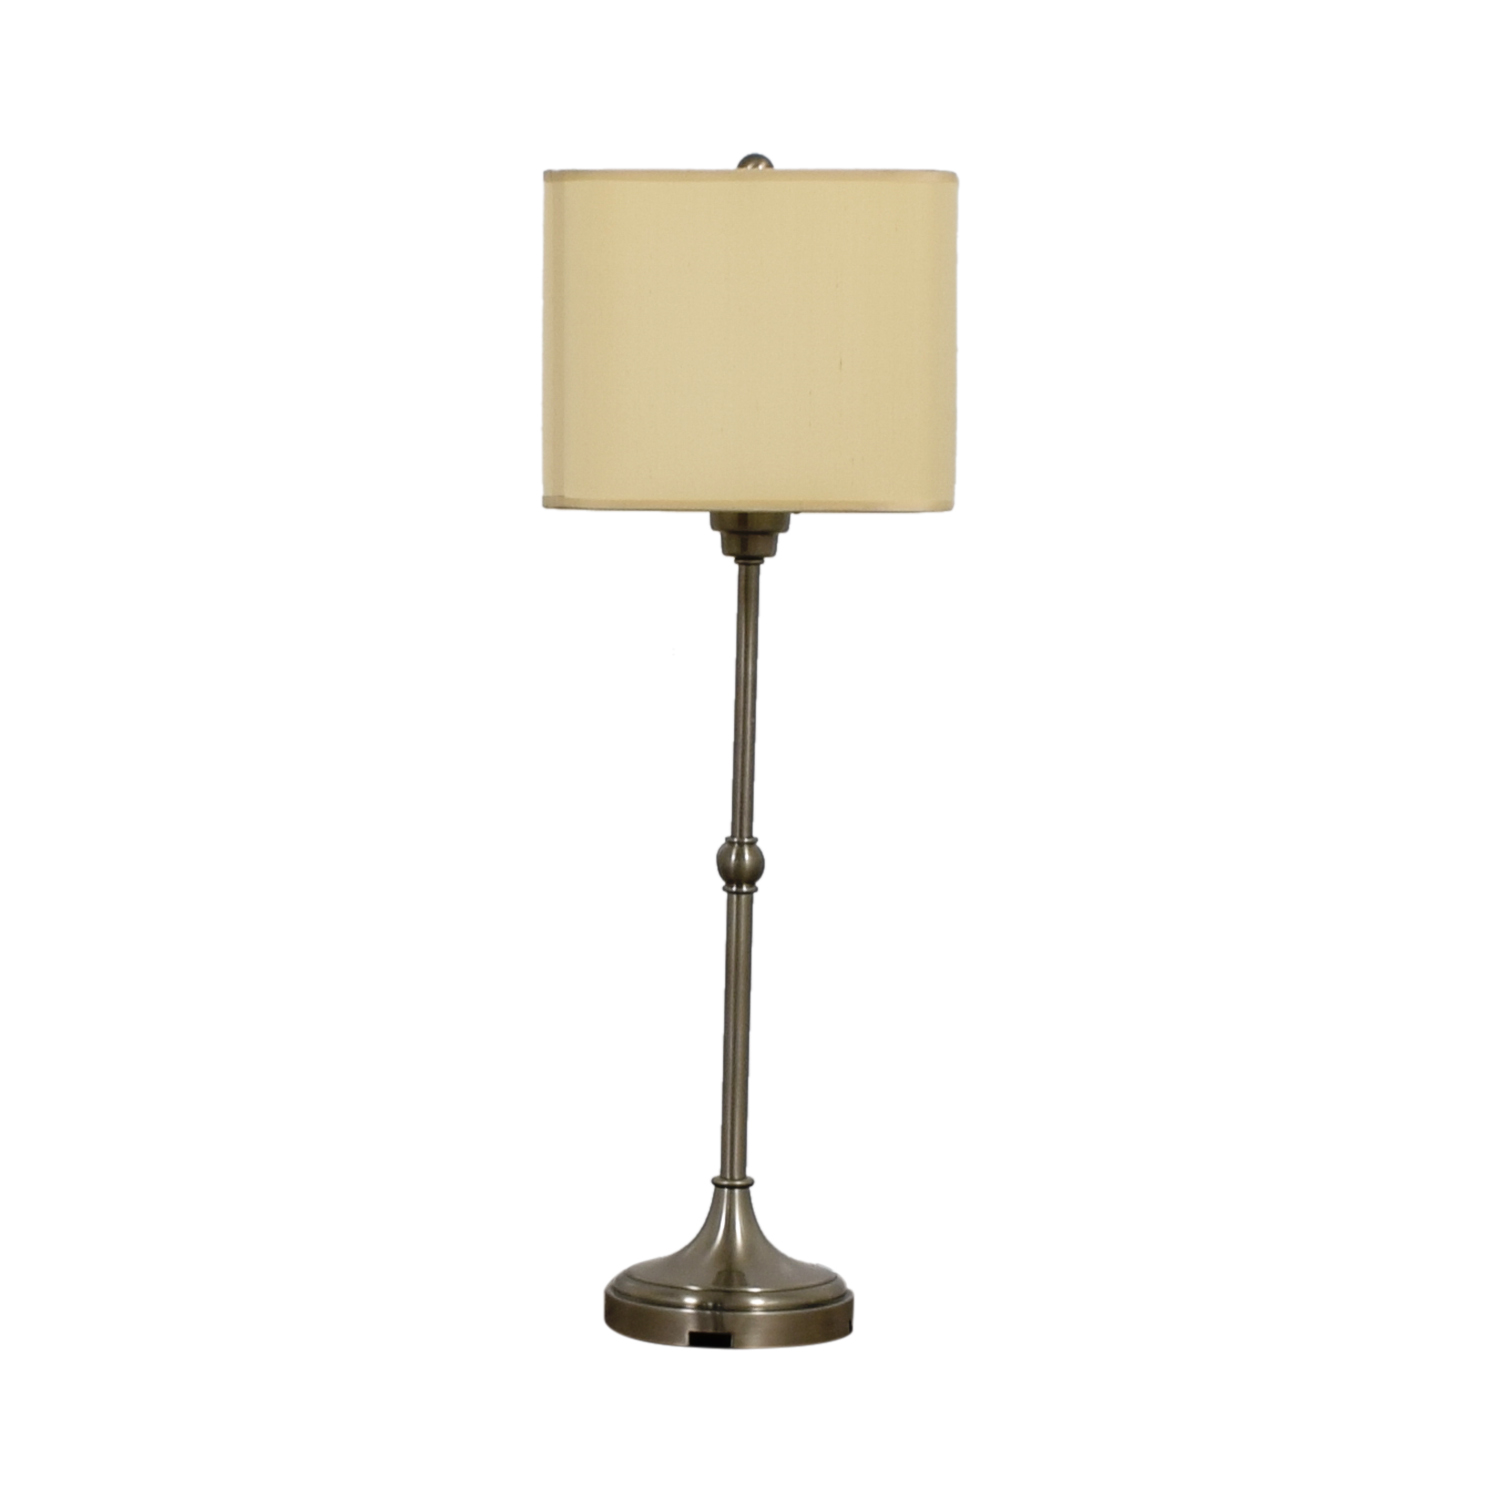 Restoration Hardware Restoration Hardware Brushed Nickel Tall Table Lamp on sale